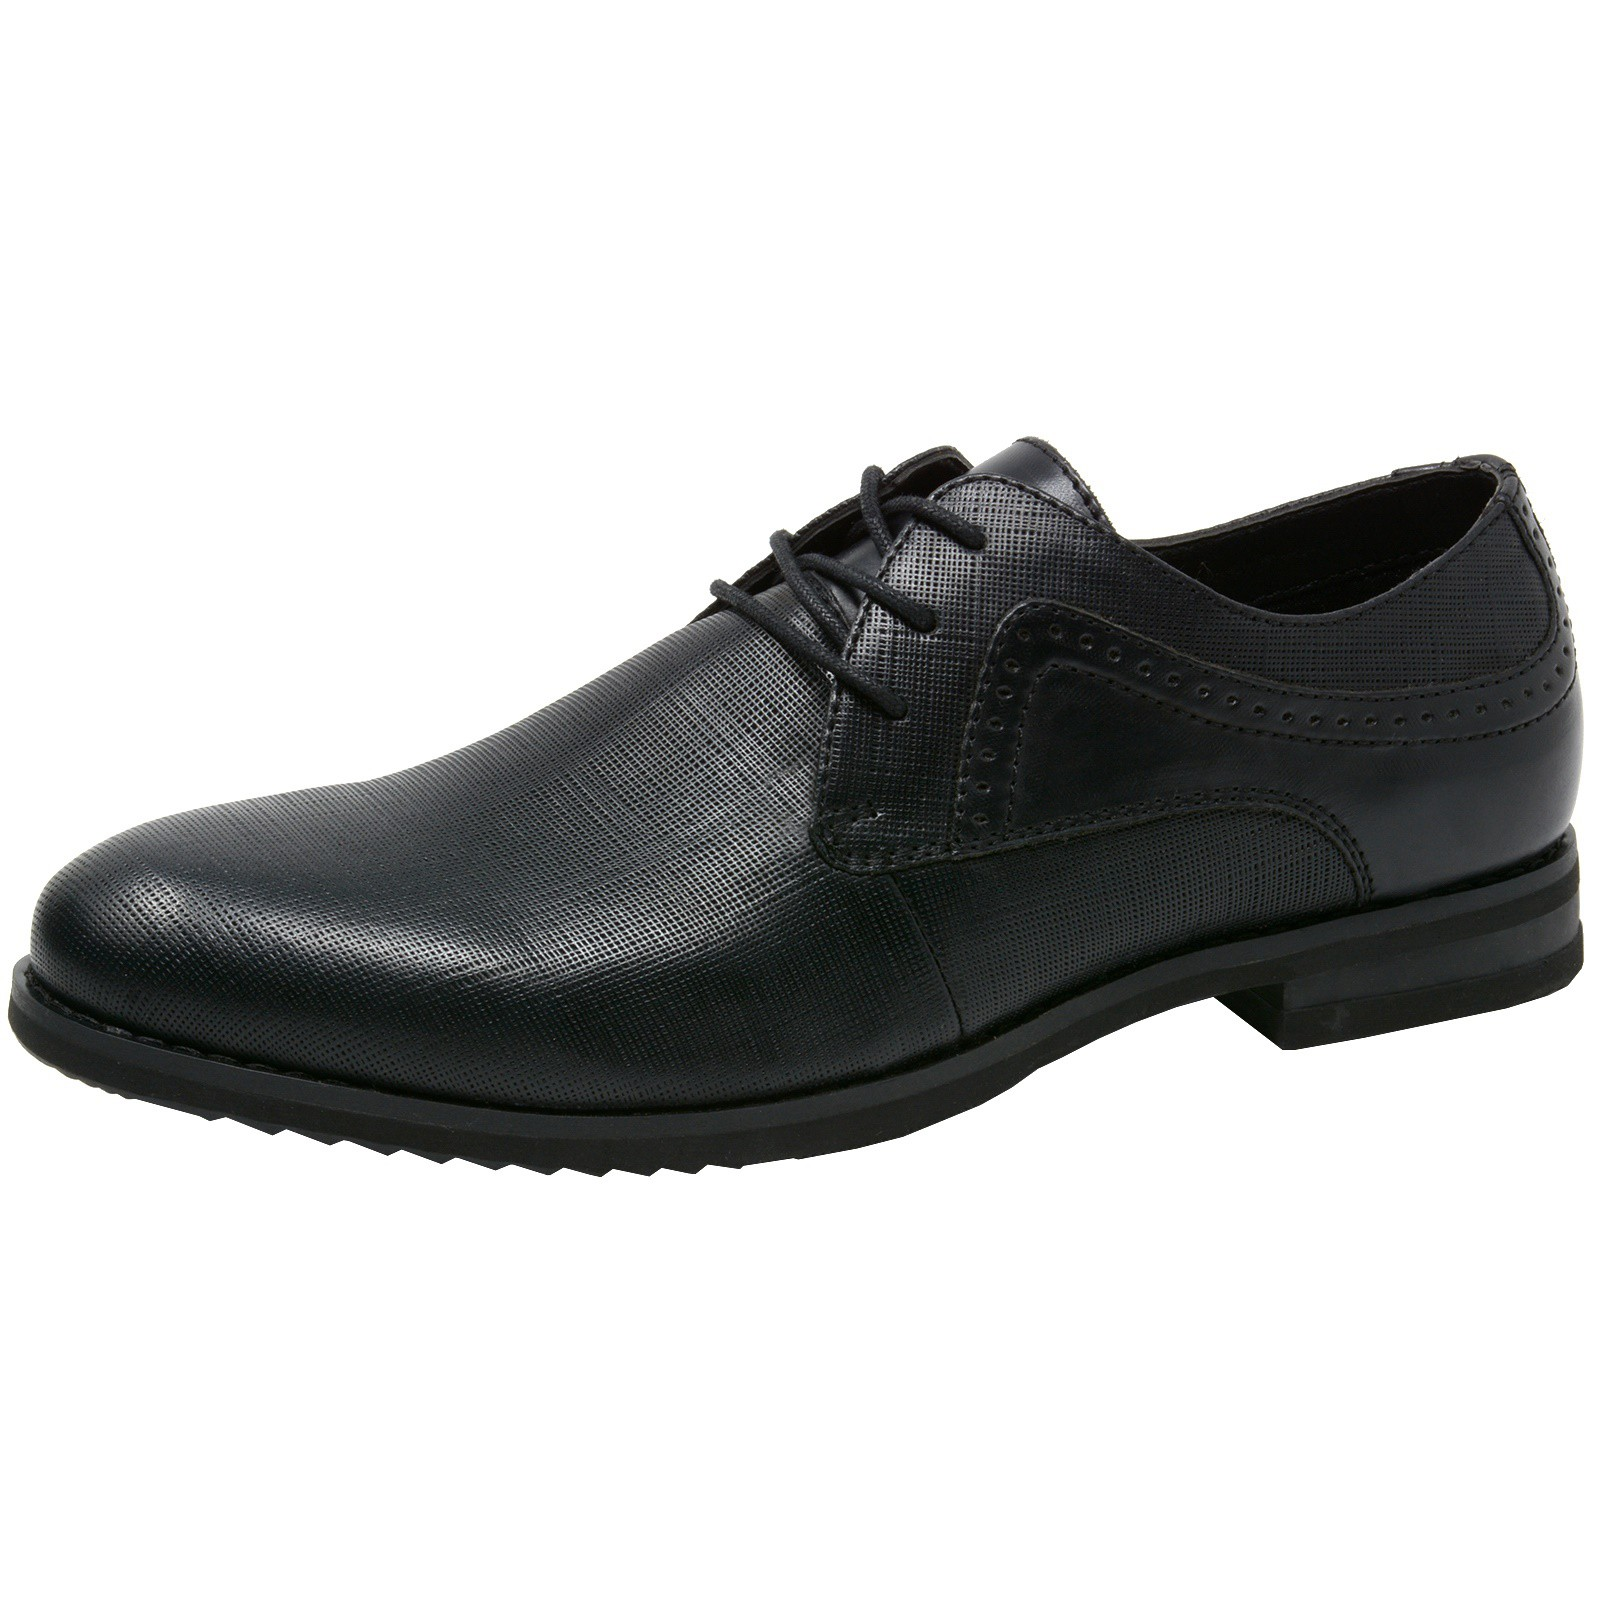 Double-Diamond-by-Alpine-Swiss-Mens-Saffiano-Leather-Lace-Up-Oxford-Dress-Shoes thumbnail 14